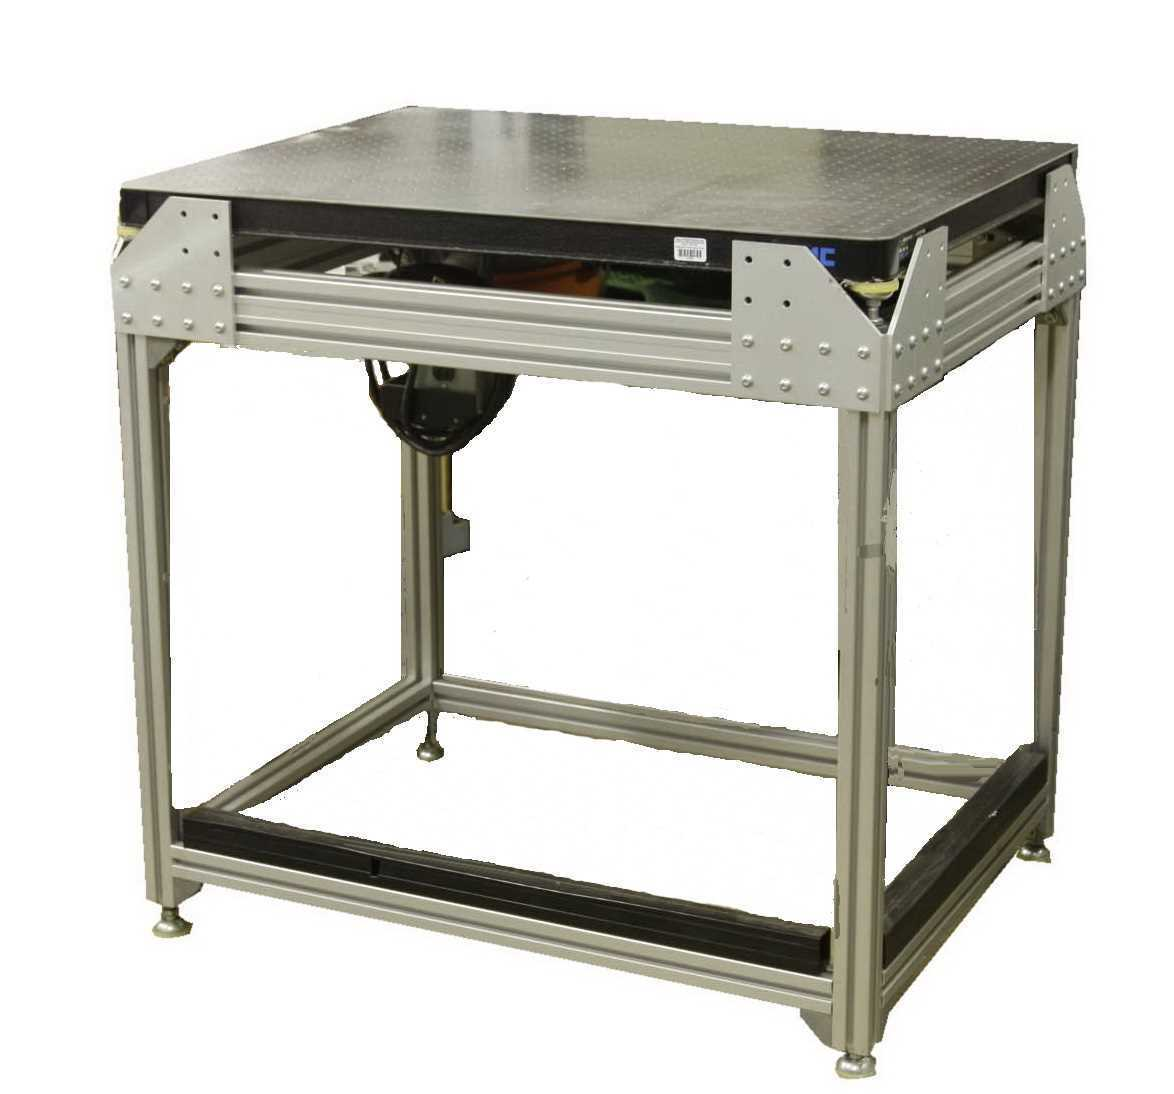 Used Air-Table equipment for sale!!!